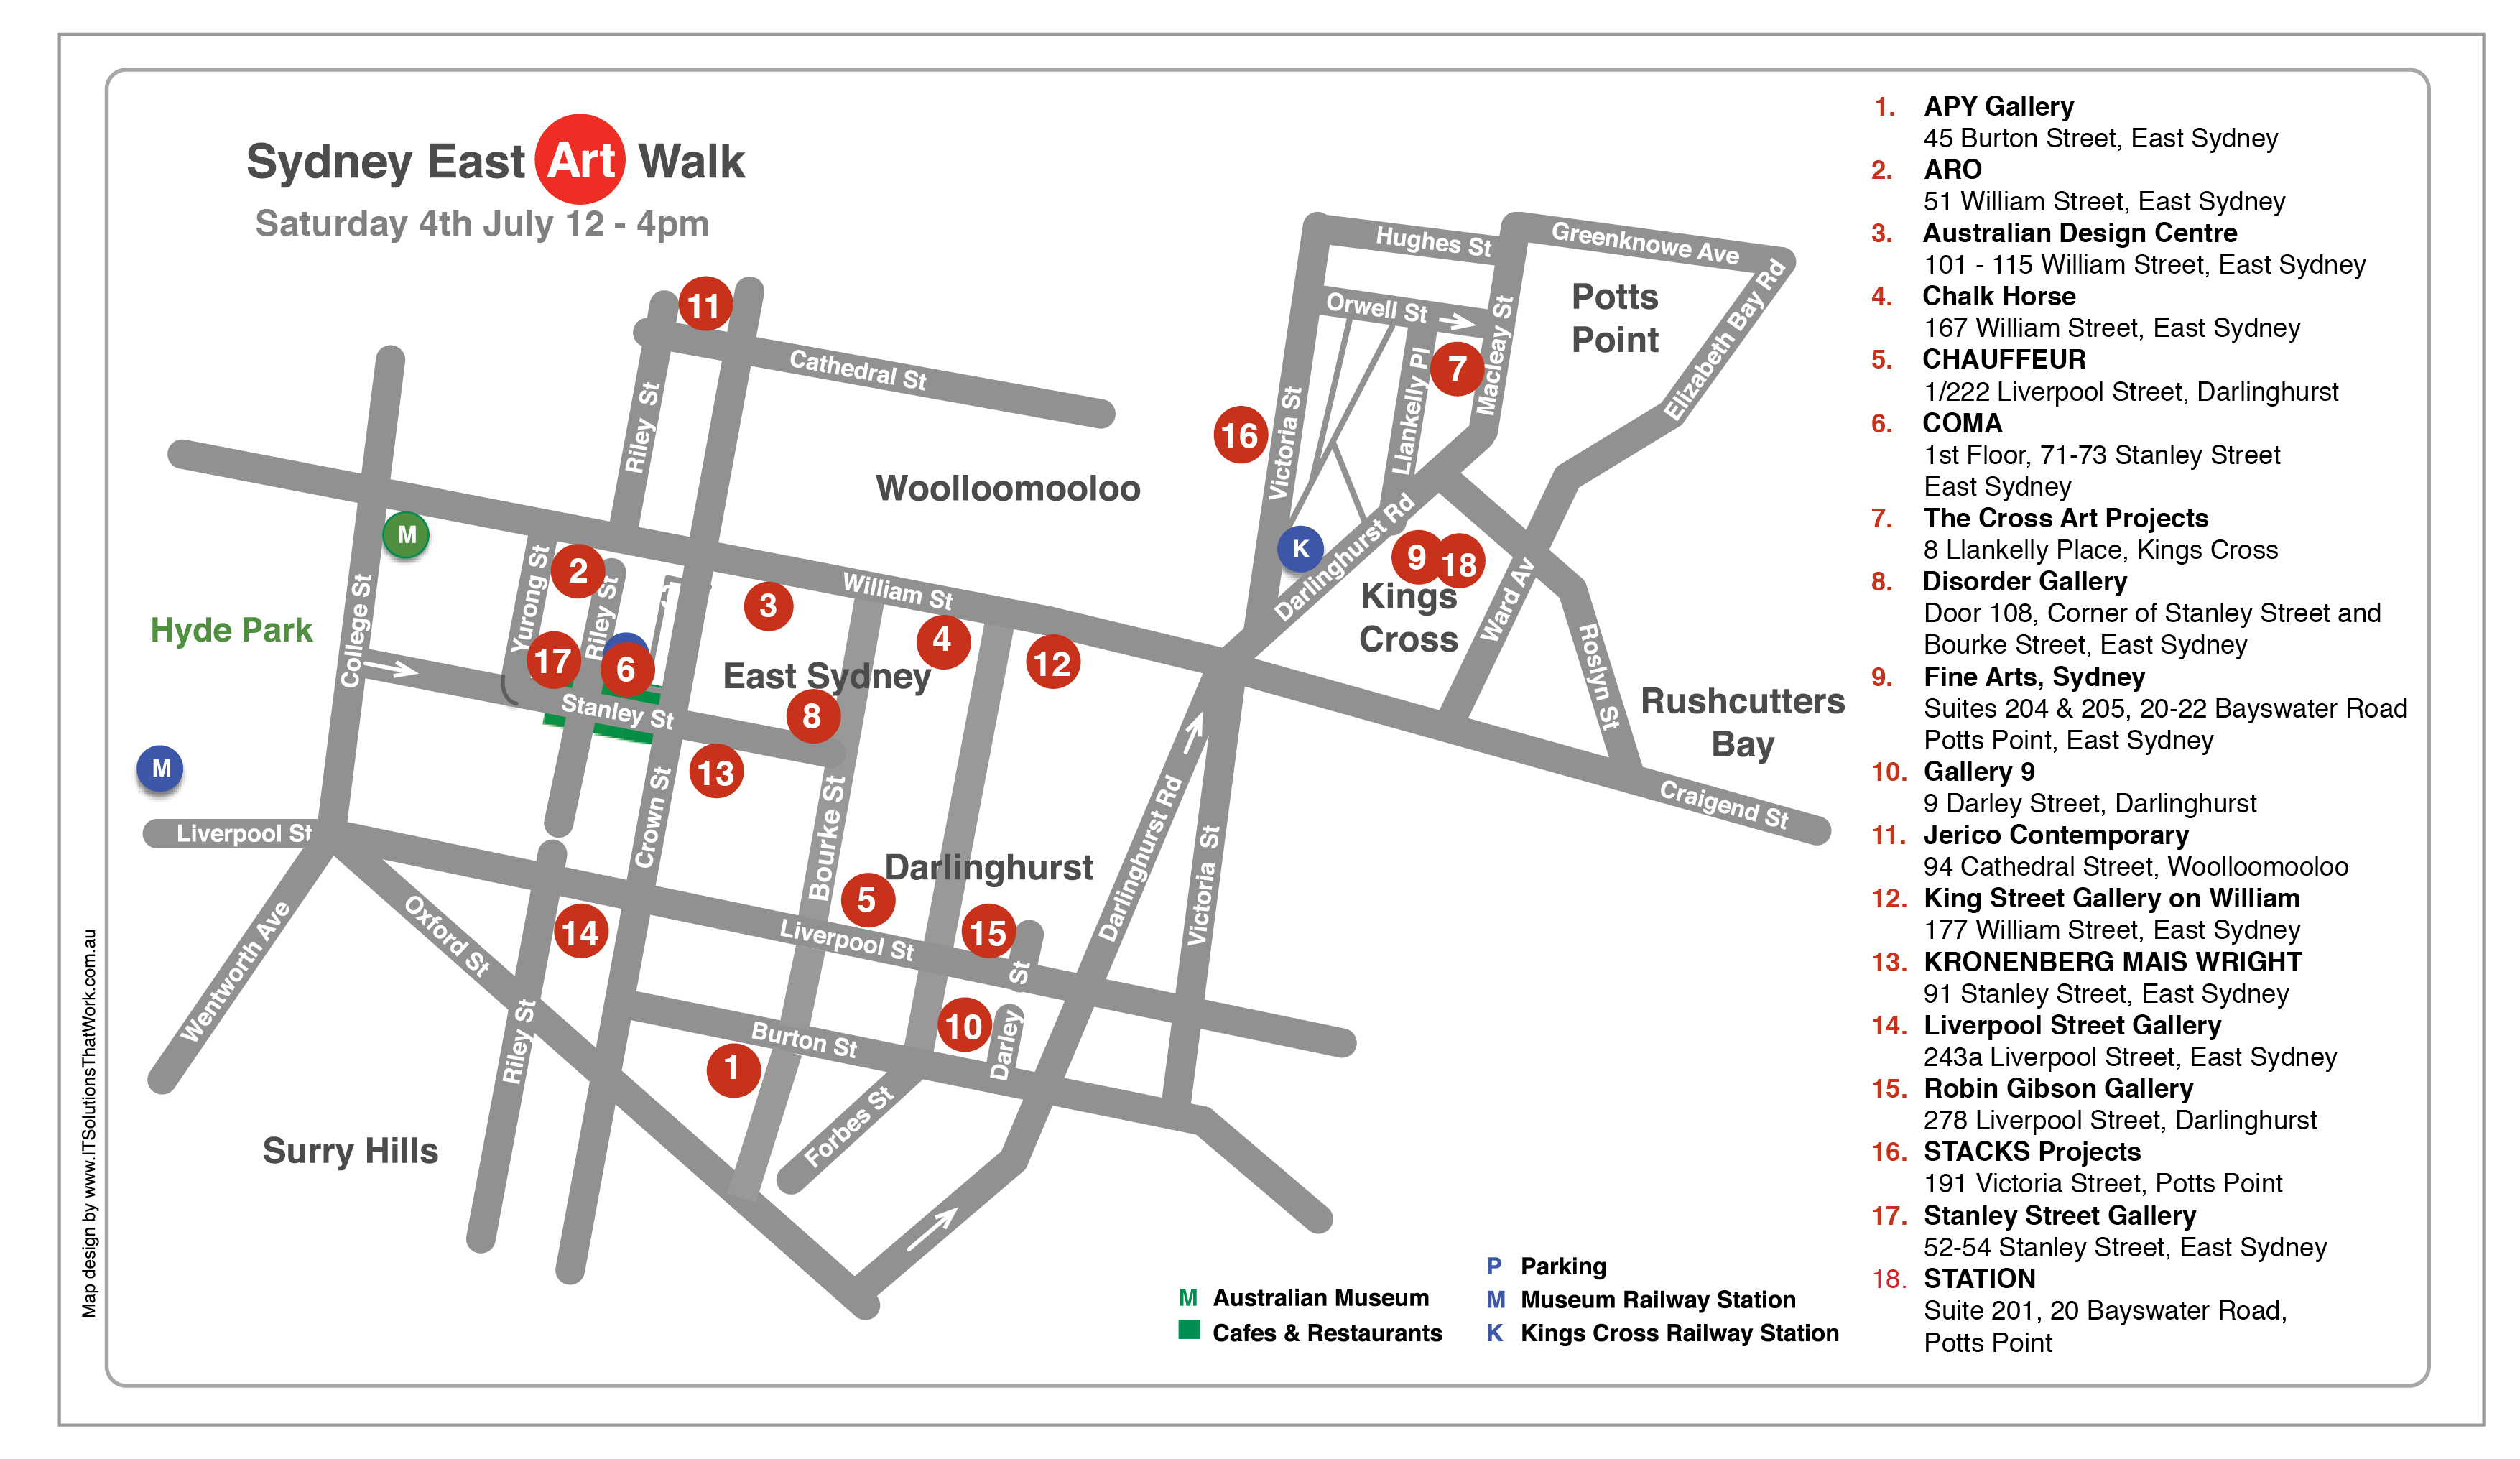 Sydney East Art Walk Map 4 July 2020